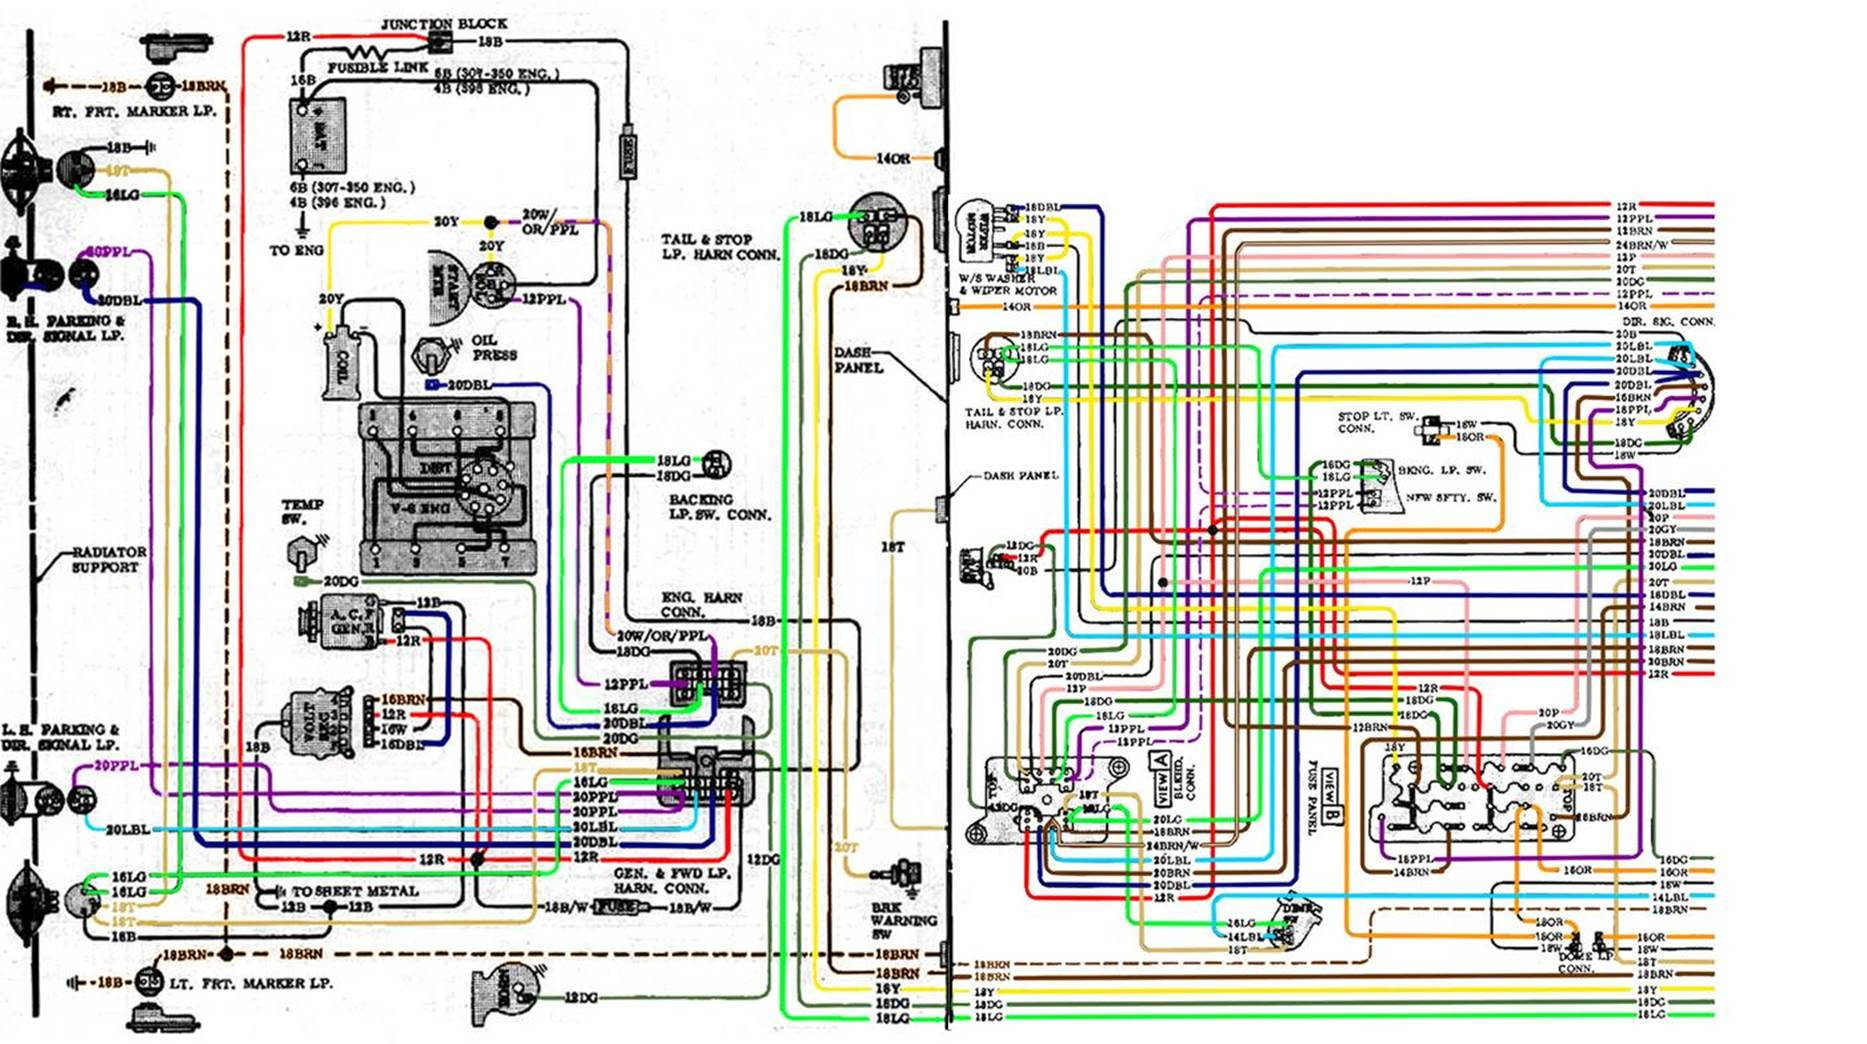 image002 67 72 chevy wiring diagram  at creativeand.co